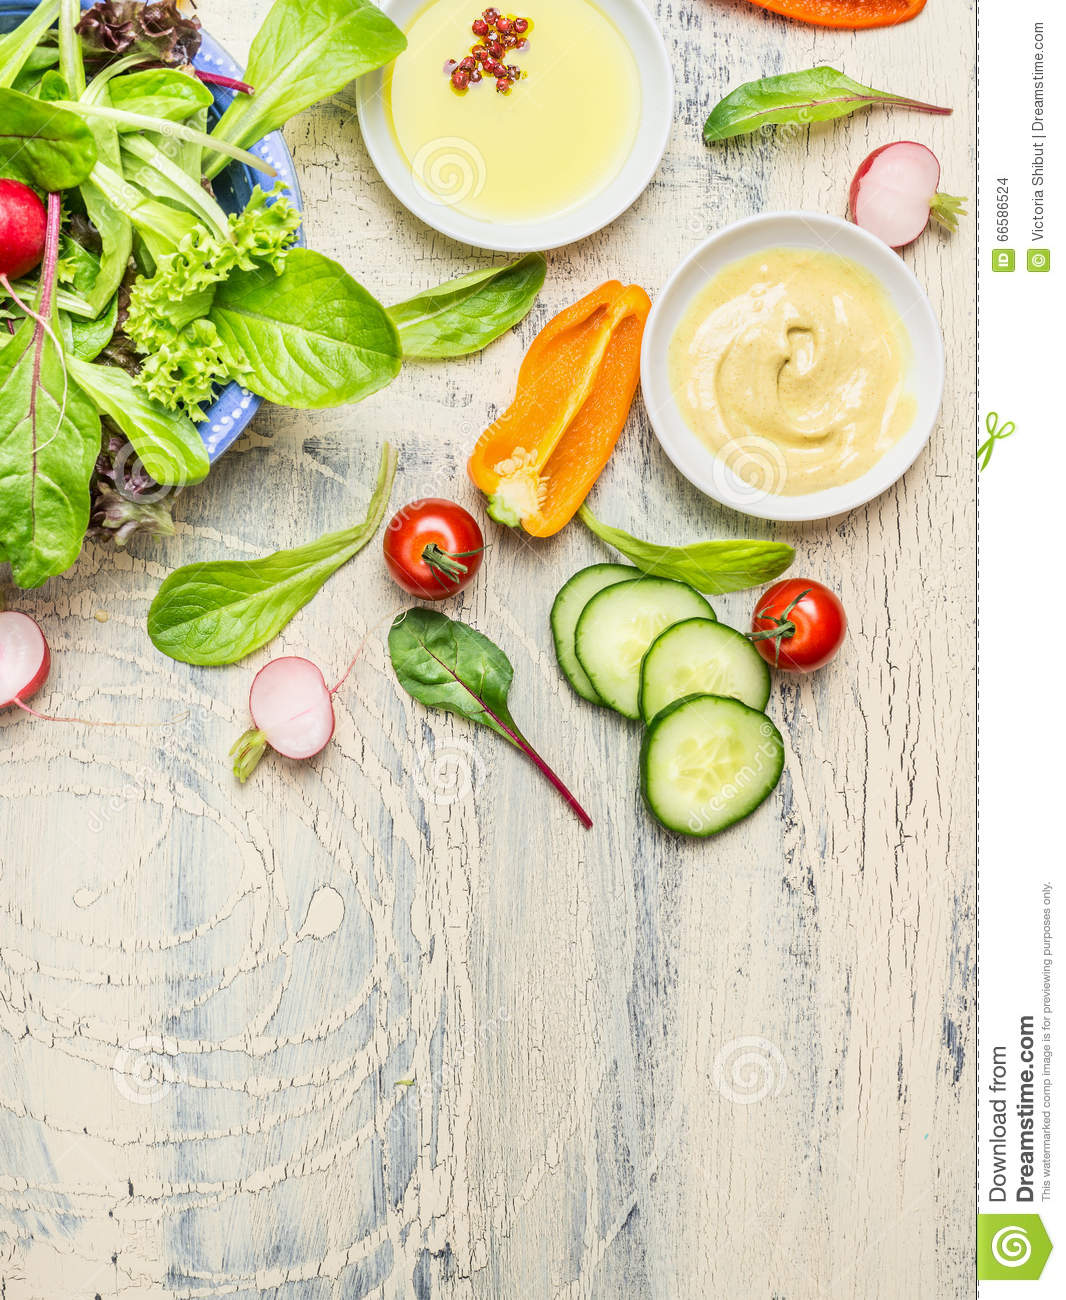 Fresh country salad preparation with organic garden vegetables on light rustic kitchen table, top view, place for text.